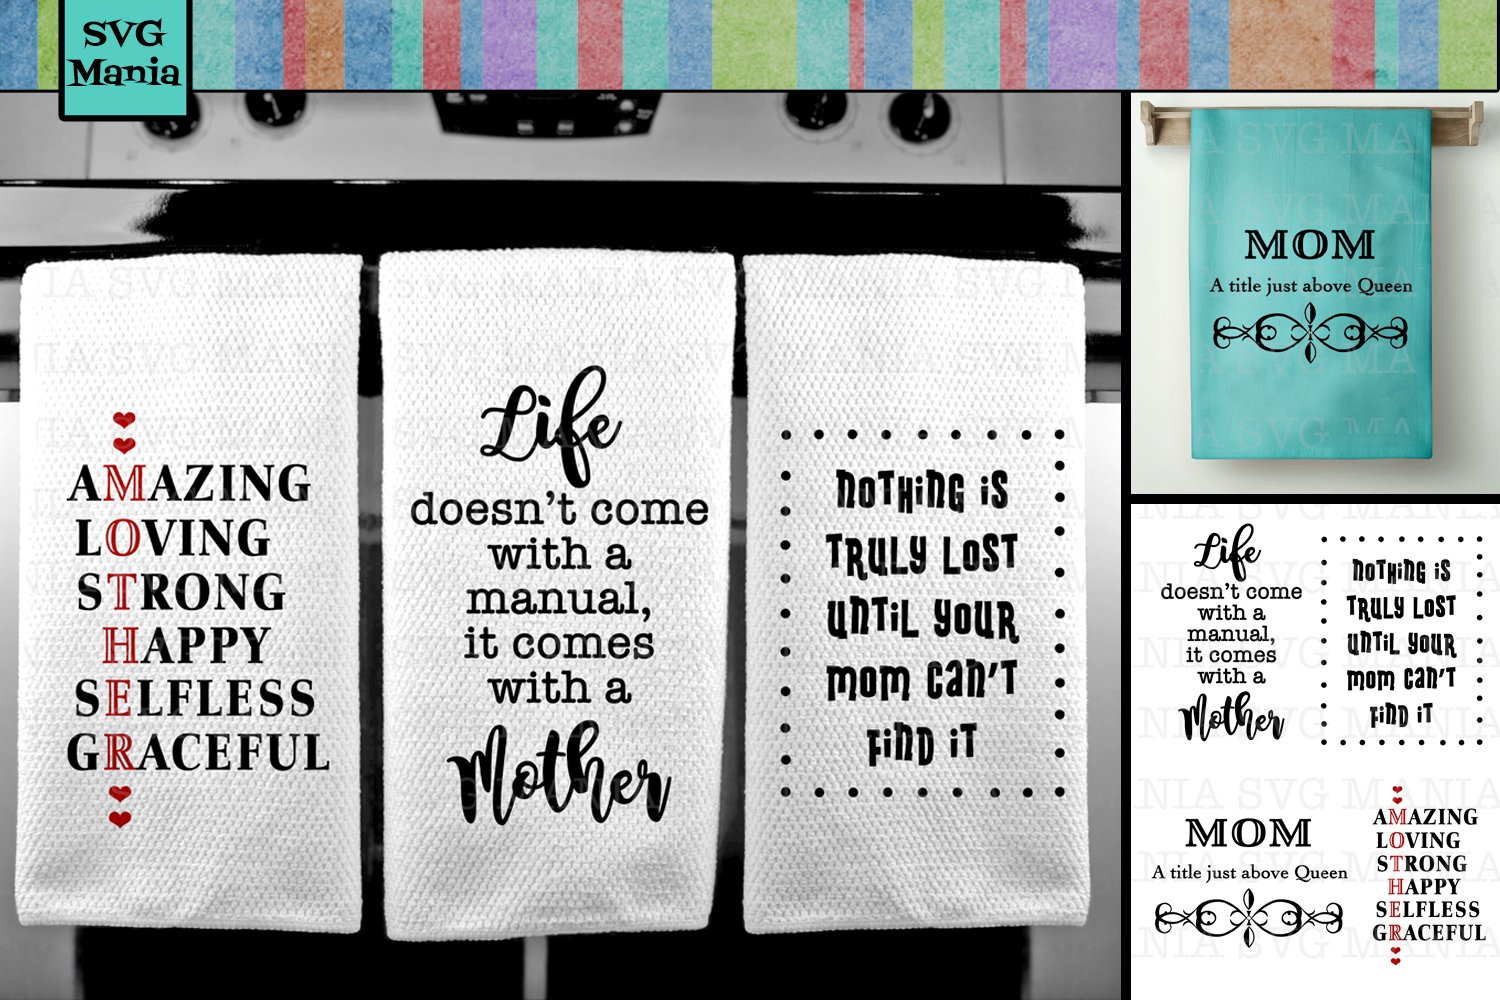 Free It is also known as mothering sunday in the uk. Mother S Day Svg Bundle Svg File Bundle Mom Sayings 4 Svgs 251352 Svgs Design Bundles SVG, PNG, EPS, DXF File